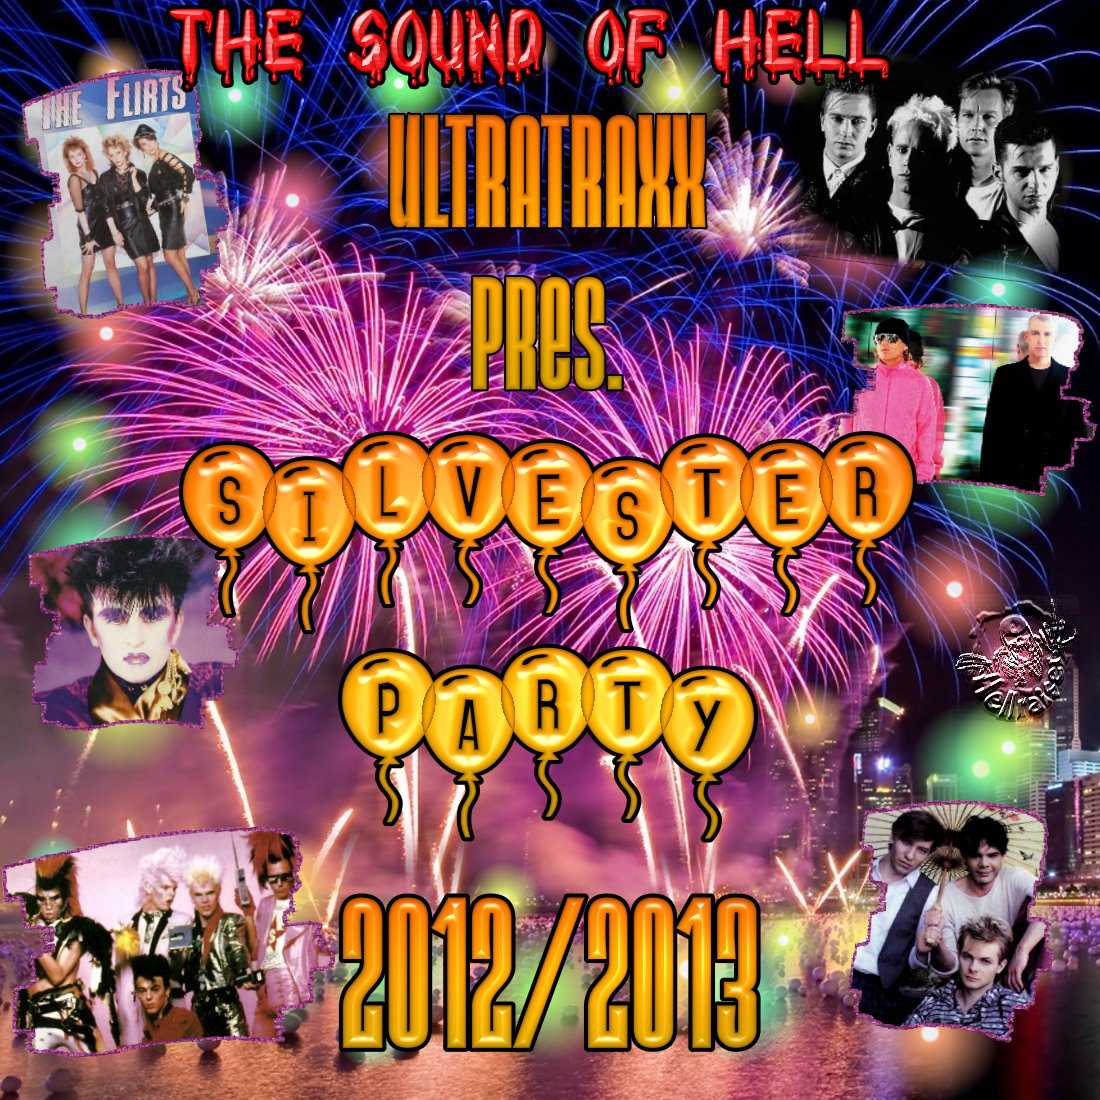 Ultratraxx Presents Silvester Party 2012-2013: BACKUP CD